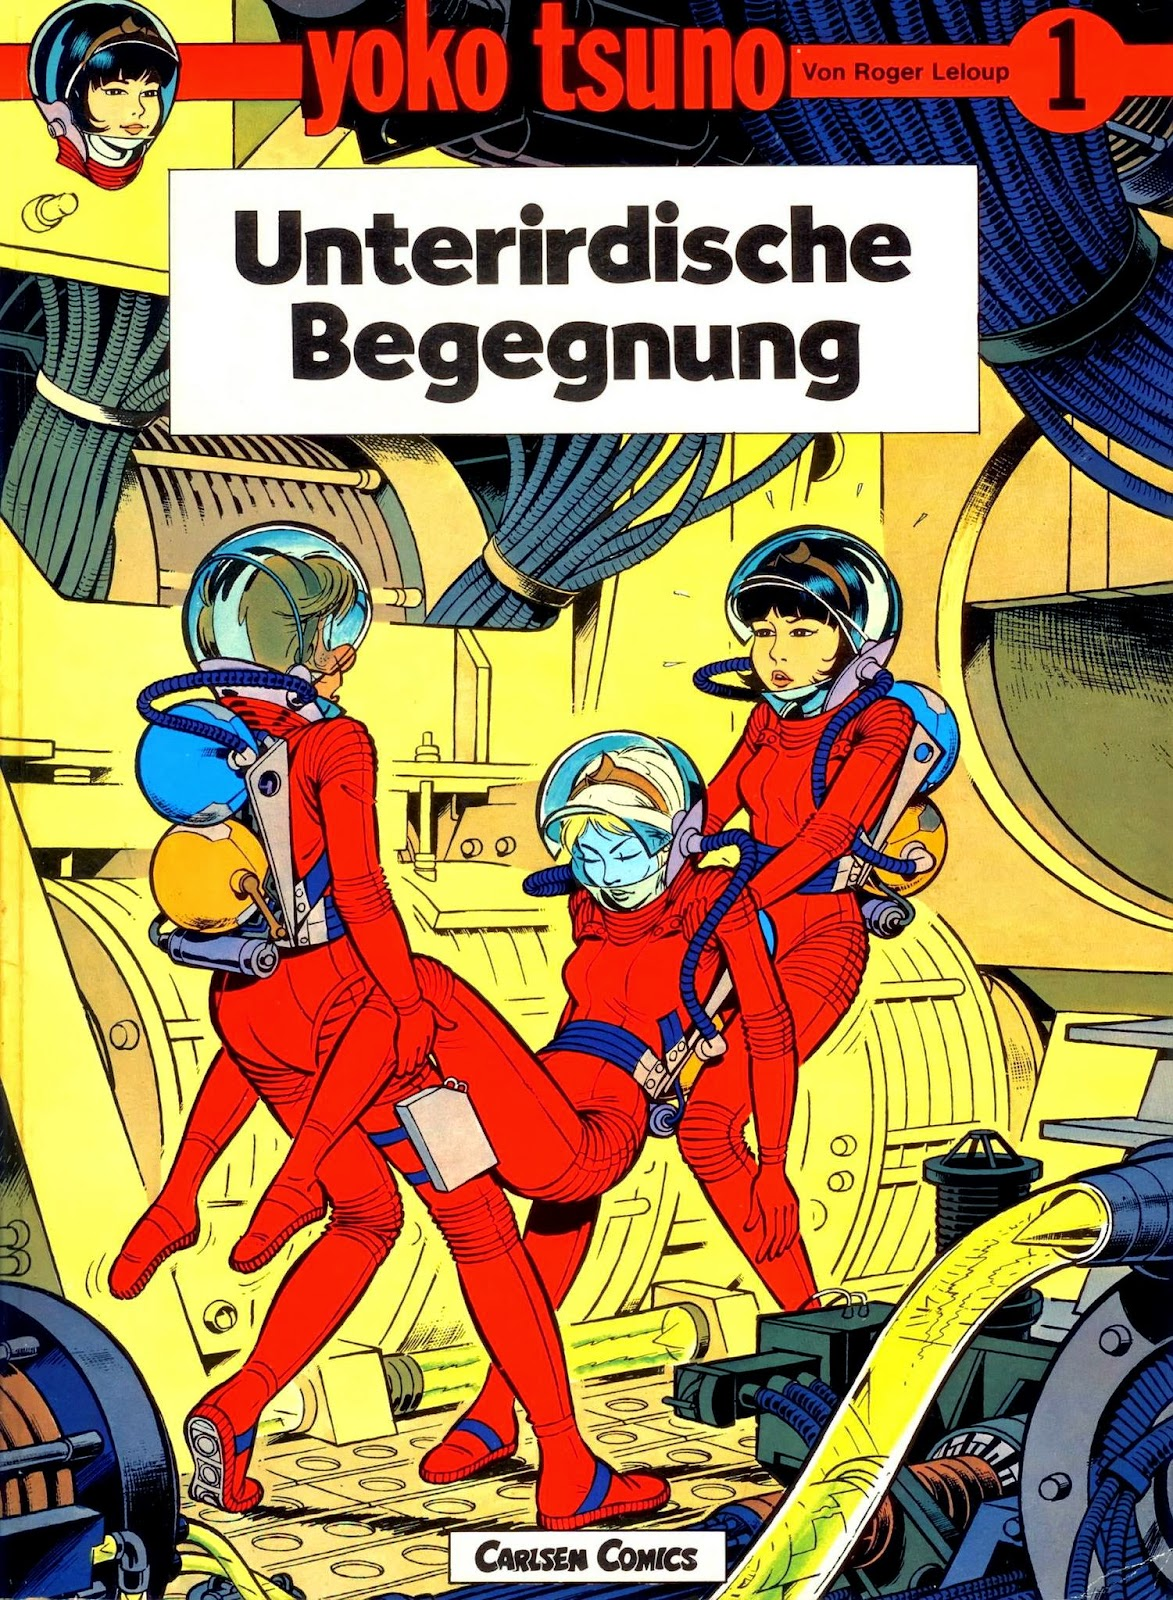 Kablam 10 Awesome German Comic Books to Improve Your German